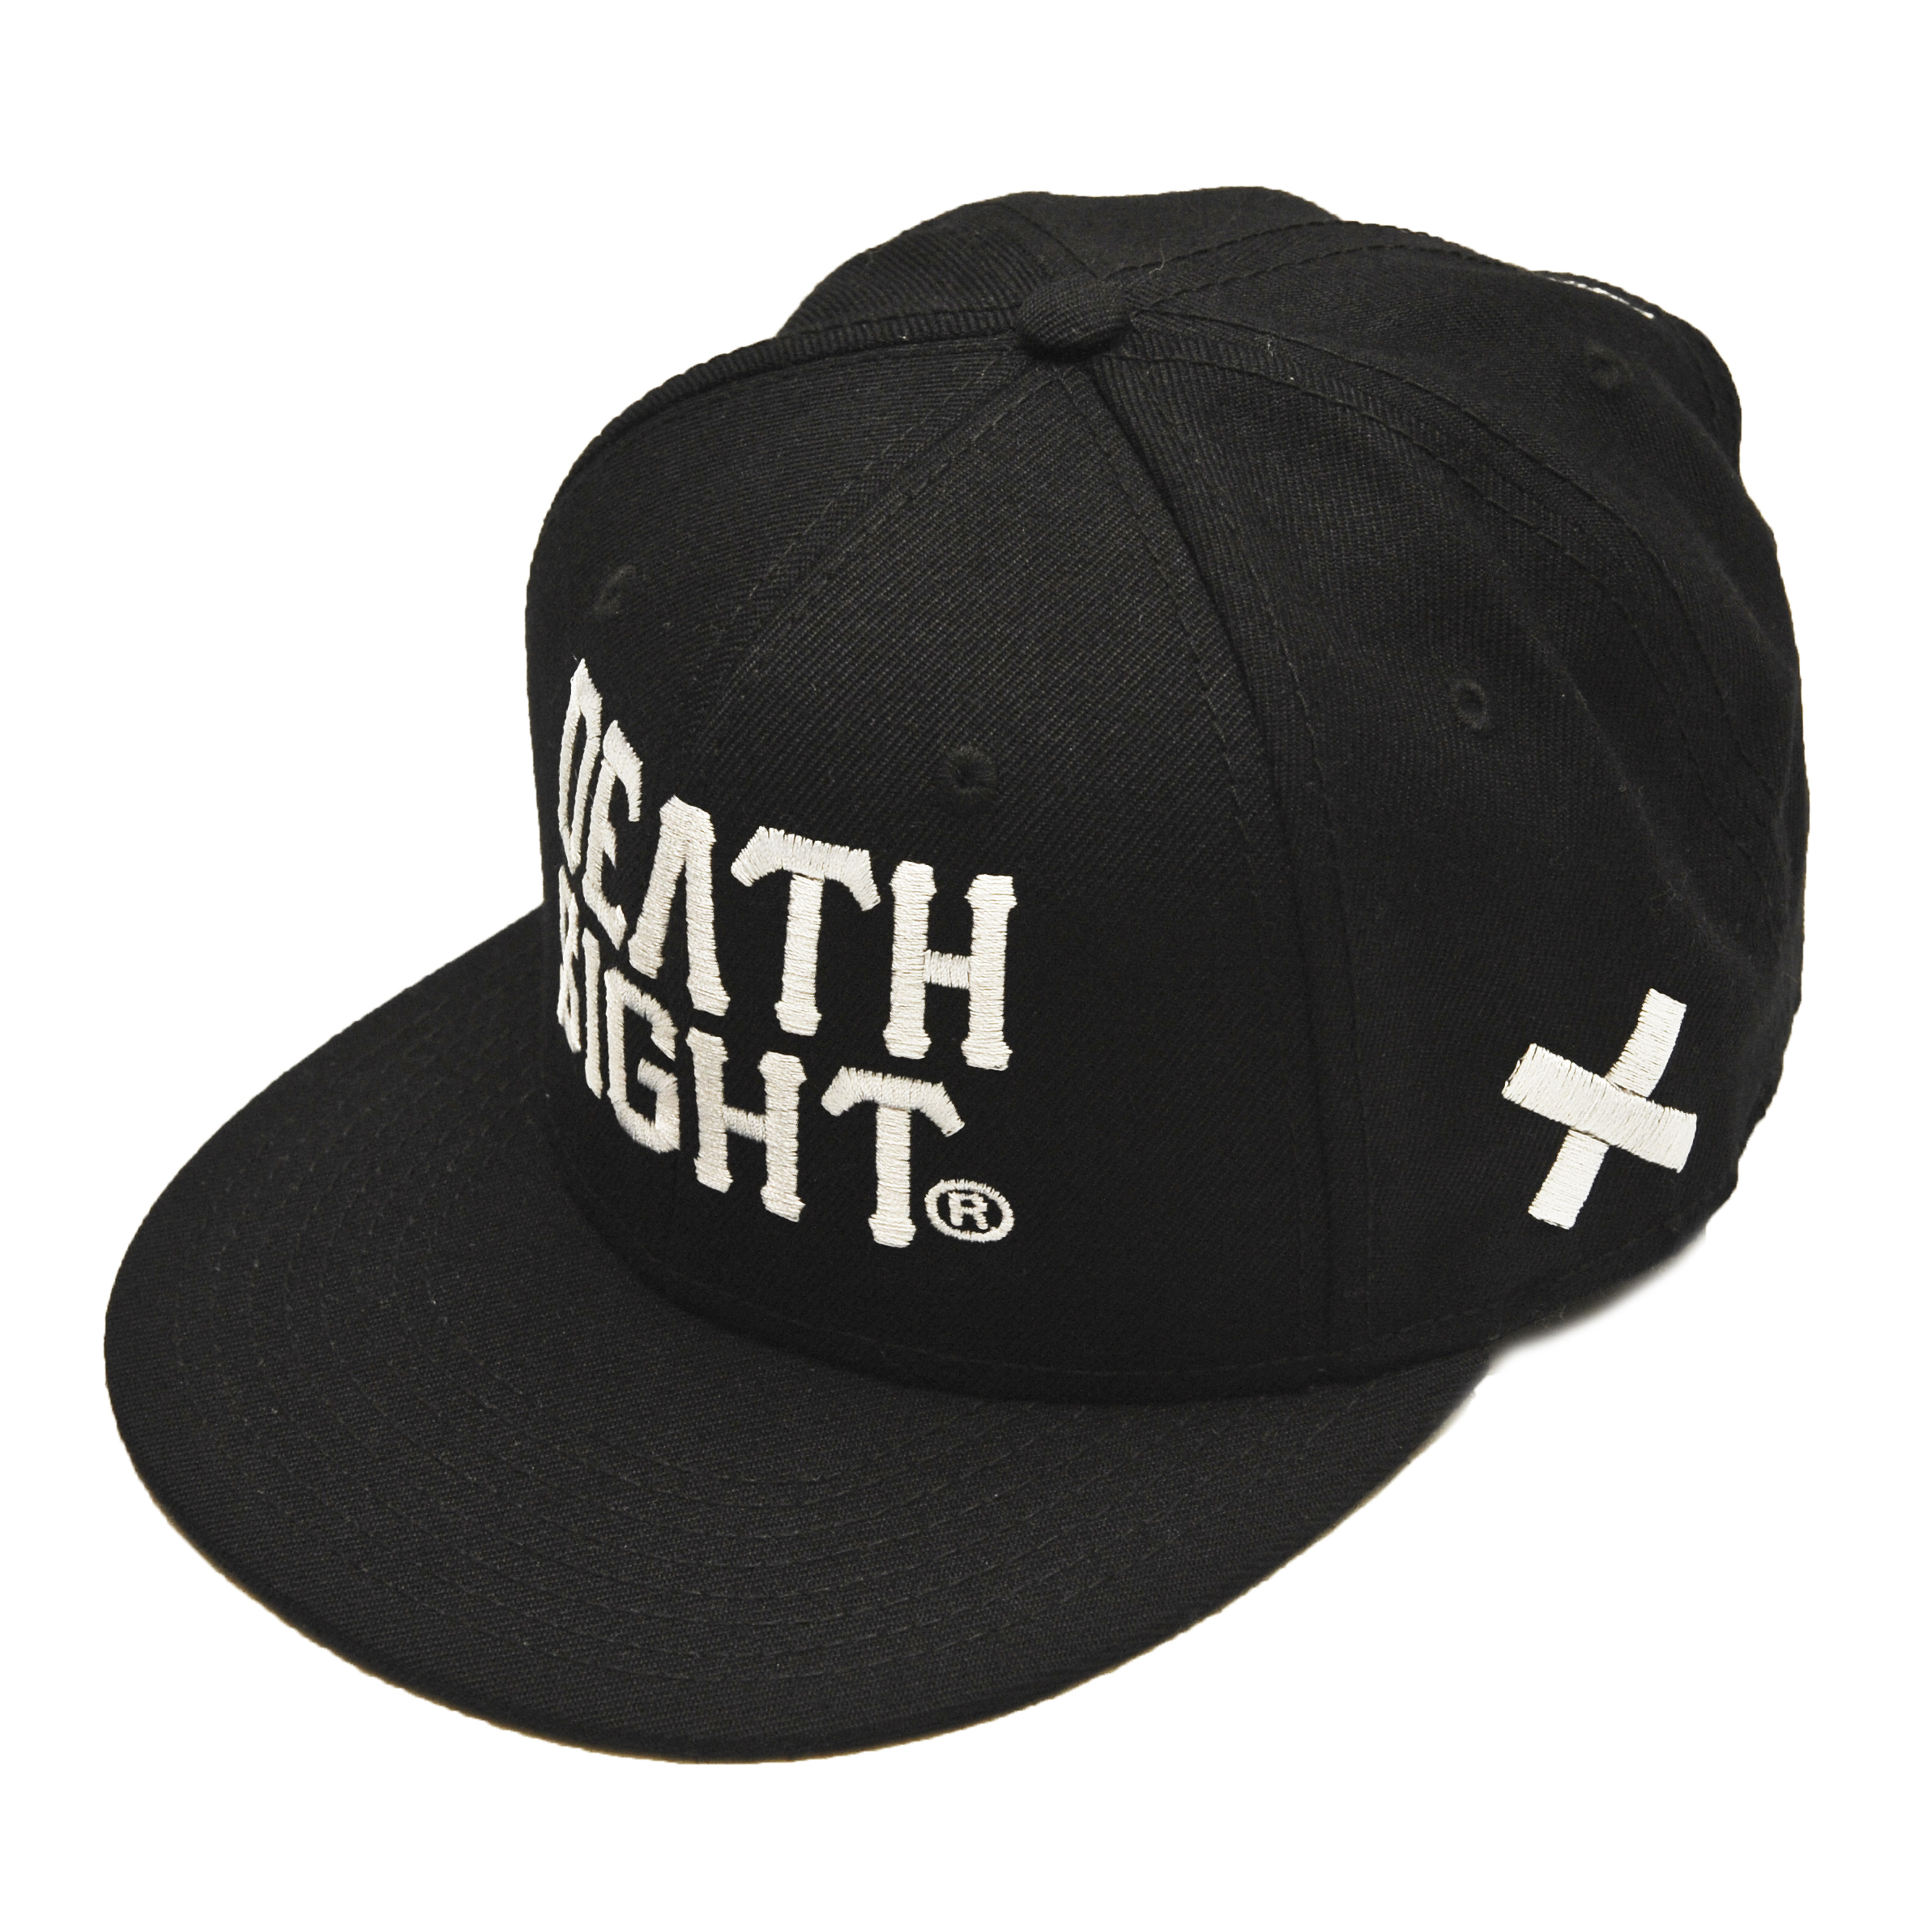 deathsight 17 Logo Cap / BLACK - 画像1